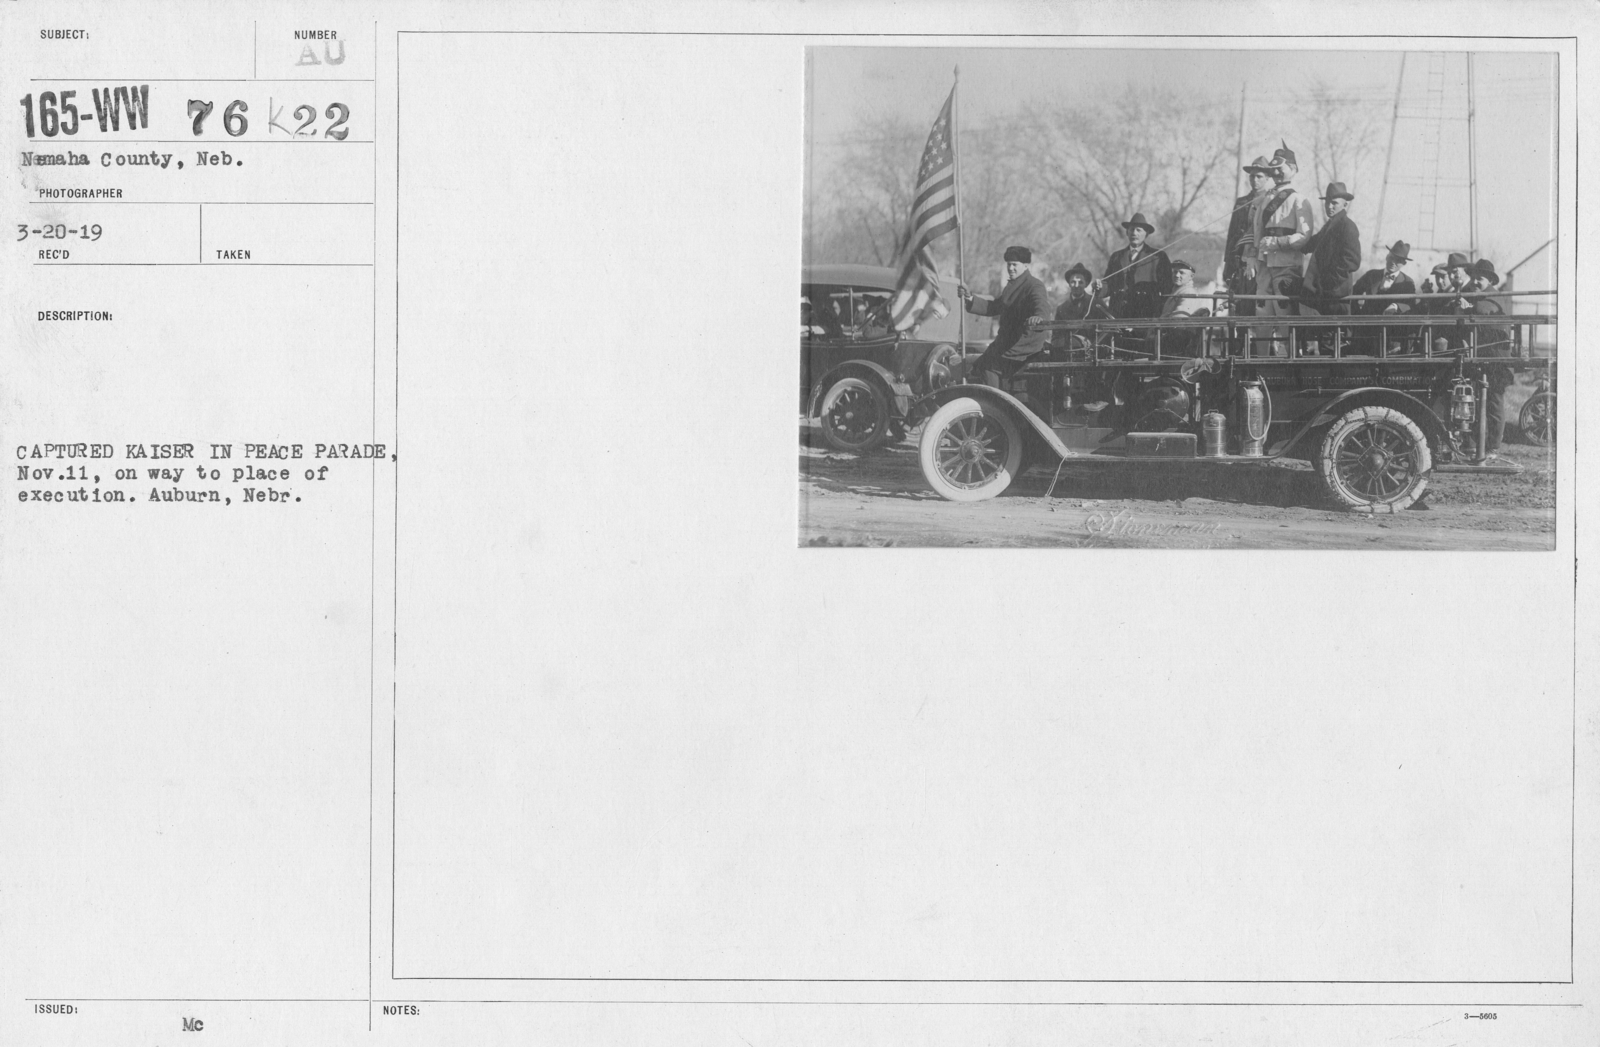 Ceremonies - Nebraska - Captured Kaiser in Peace Parade, Nov. 11, on way to place execution. Auburn, Nebr